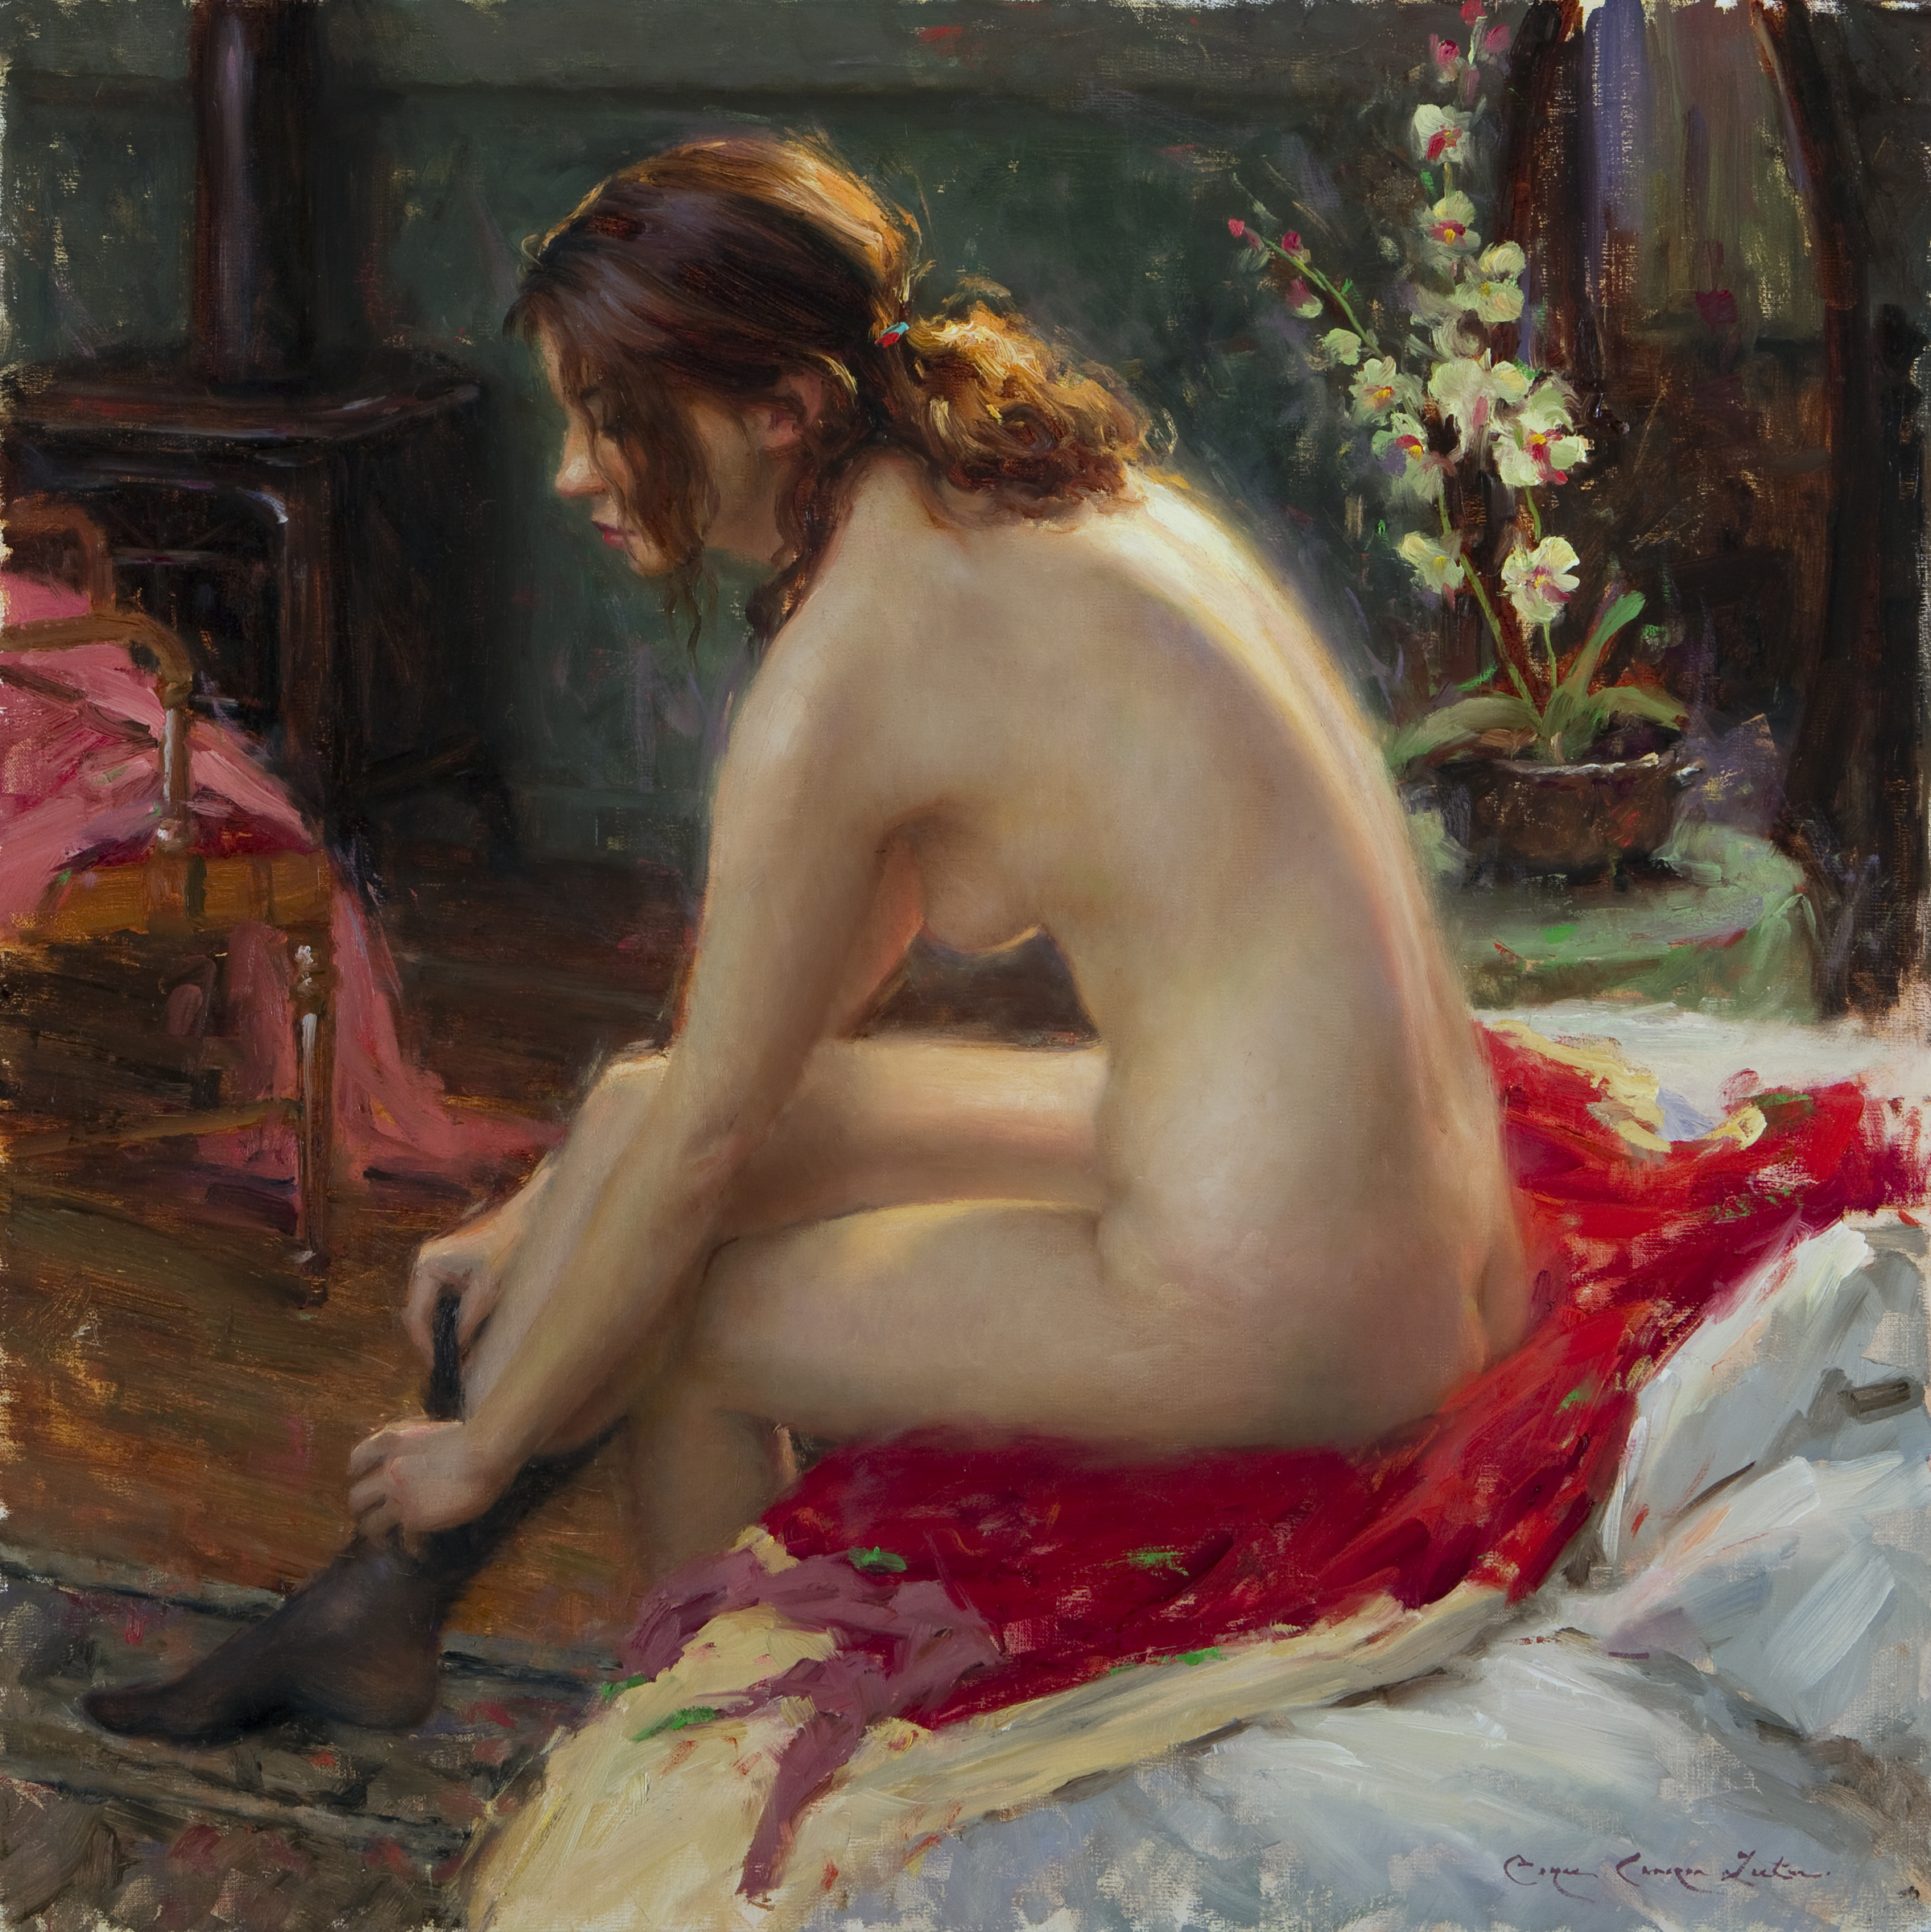 "Red,"" by Bryce Cameron Liston. Red is the signature image of the show"